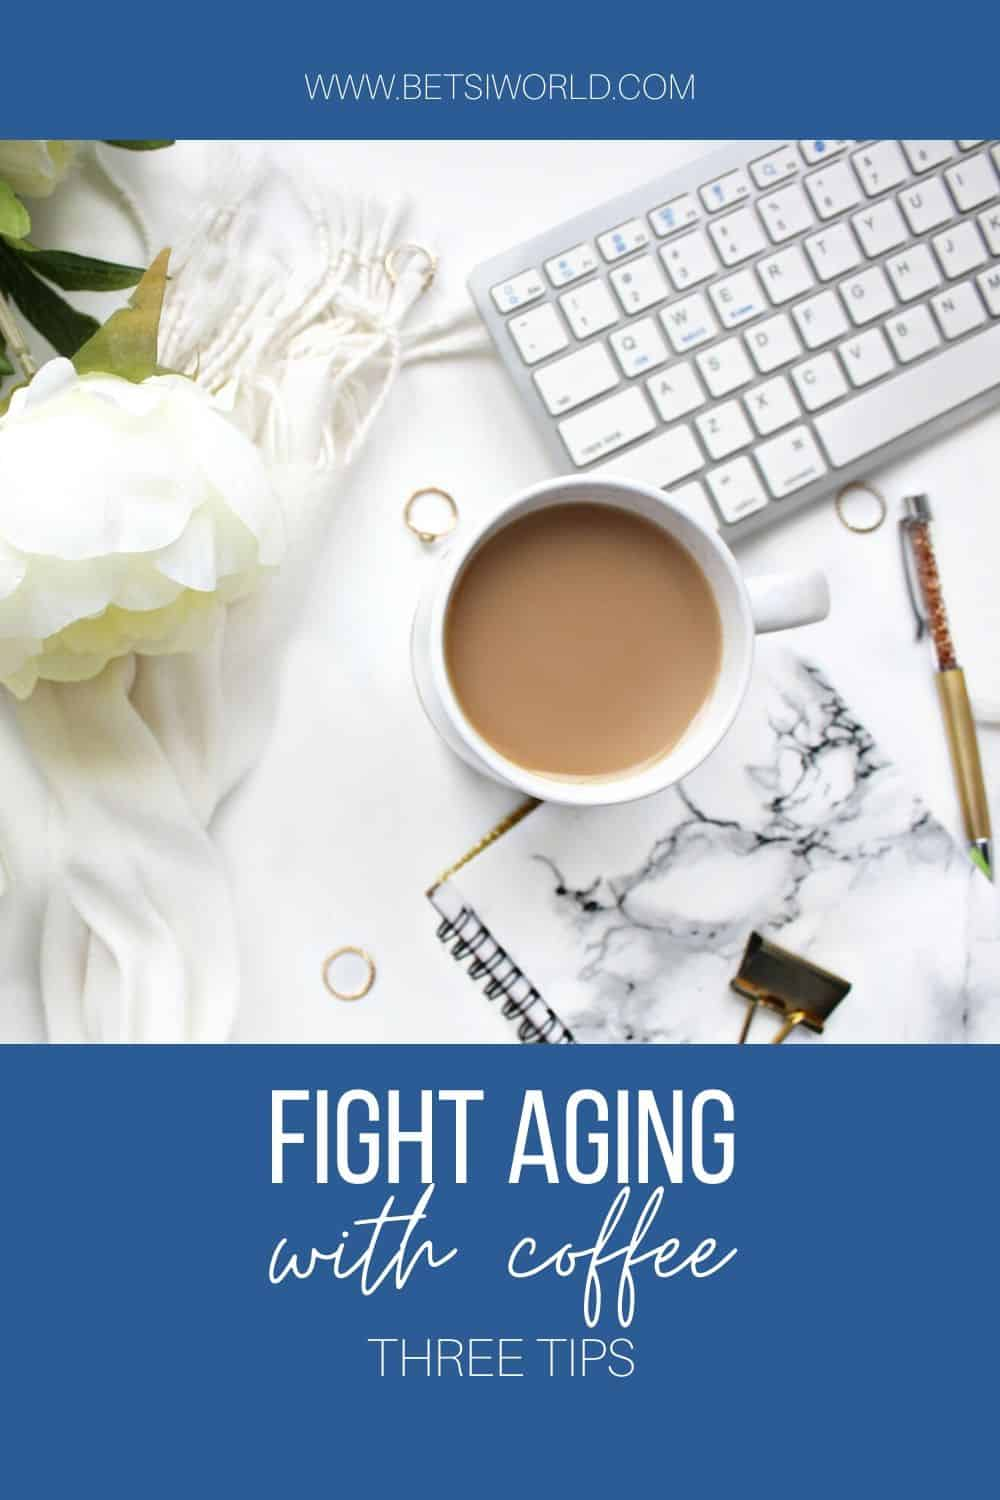 Many of us long for the first cup of coffee in the morning to help jump-start our day. Coffee, or actually the caffeine in coffee is a natural way to fight aging. So next time you pick up that delicious cup of coffee, remember you are fighting aging! #coffee #healthycoffee #caffeine